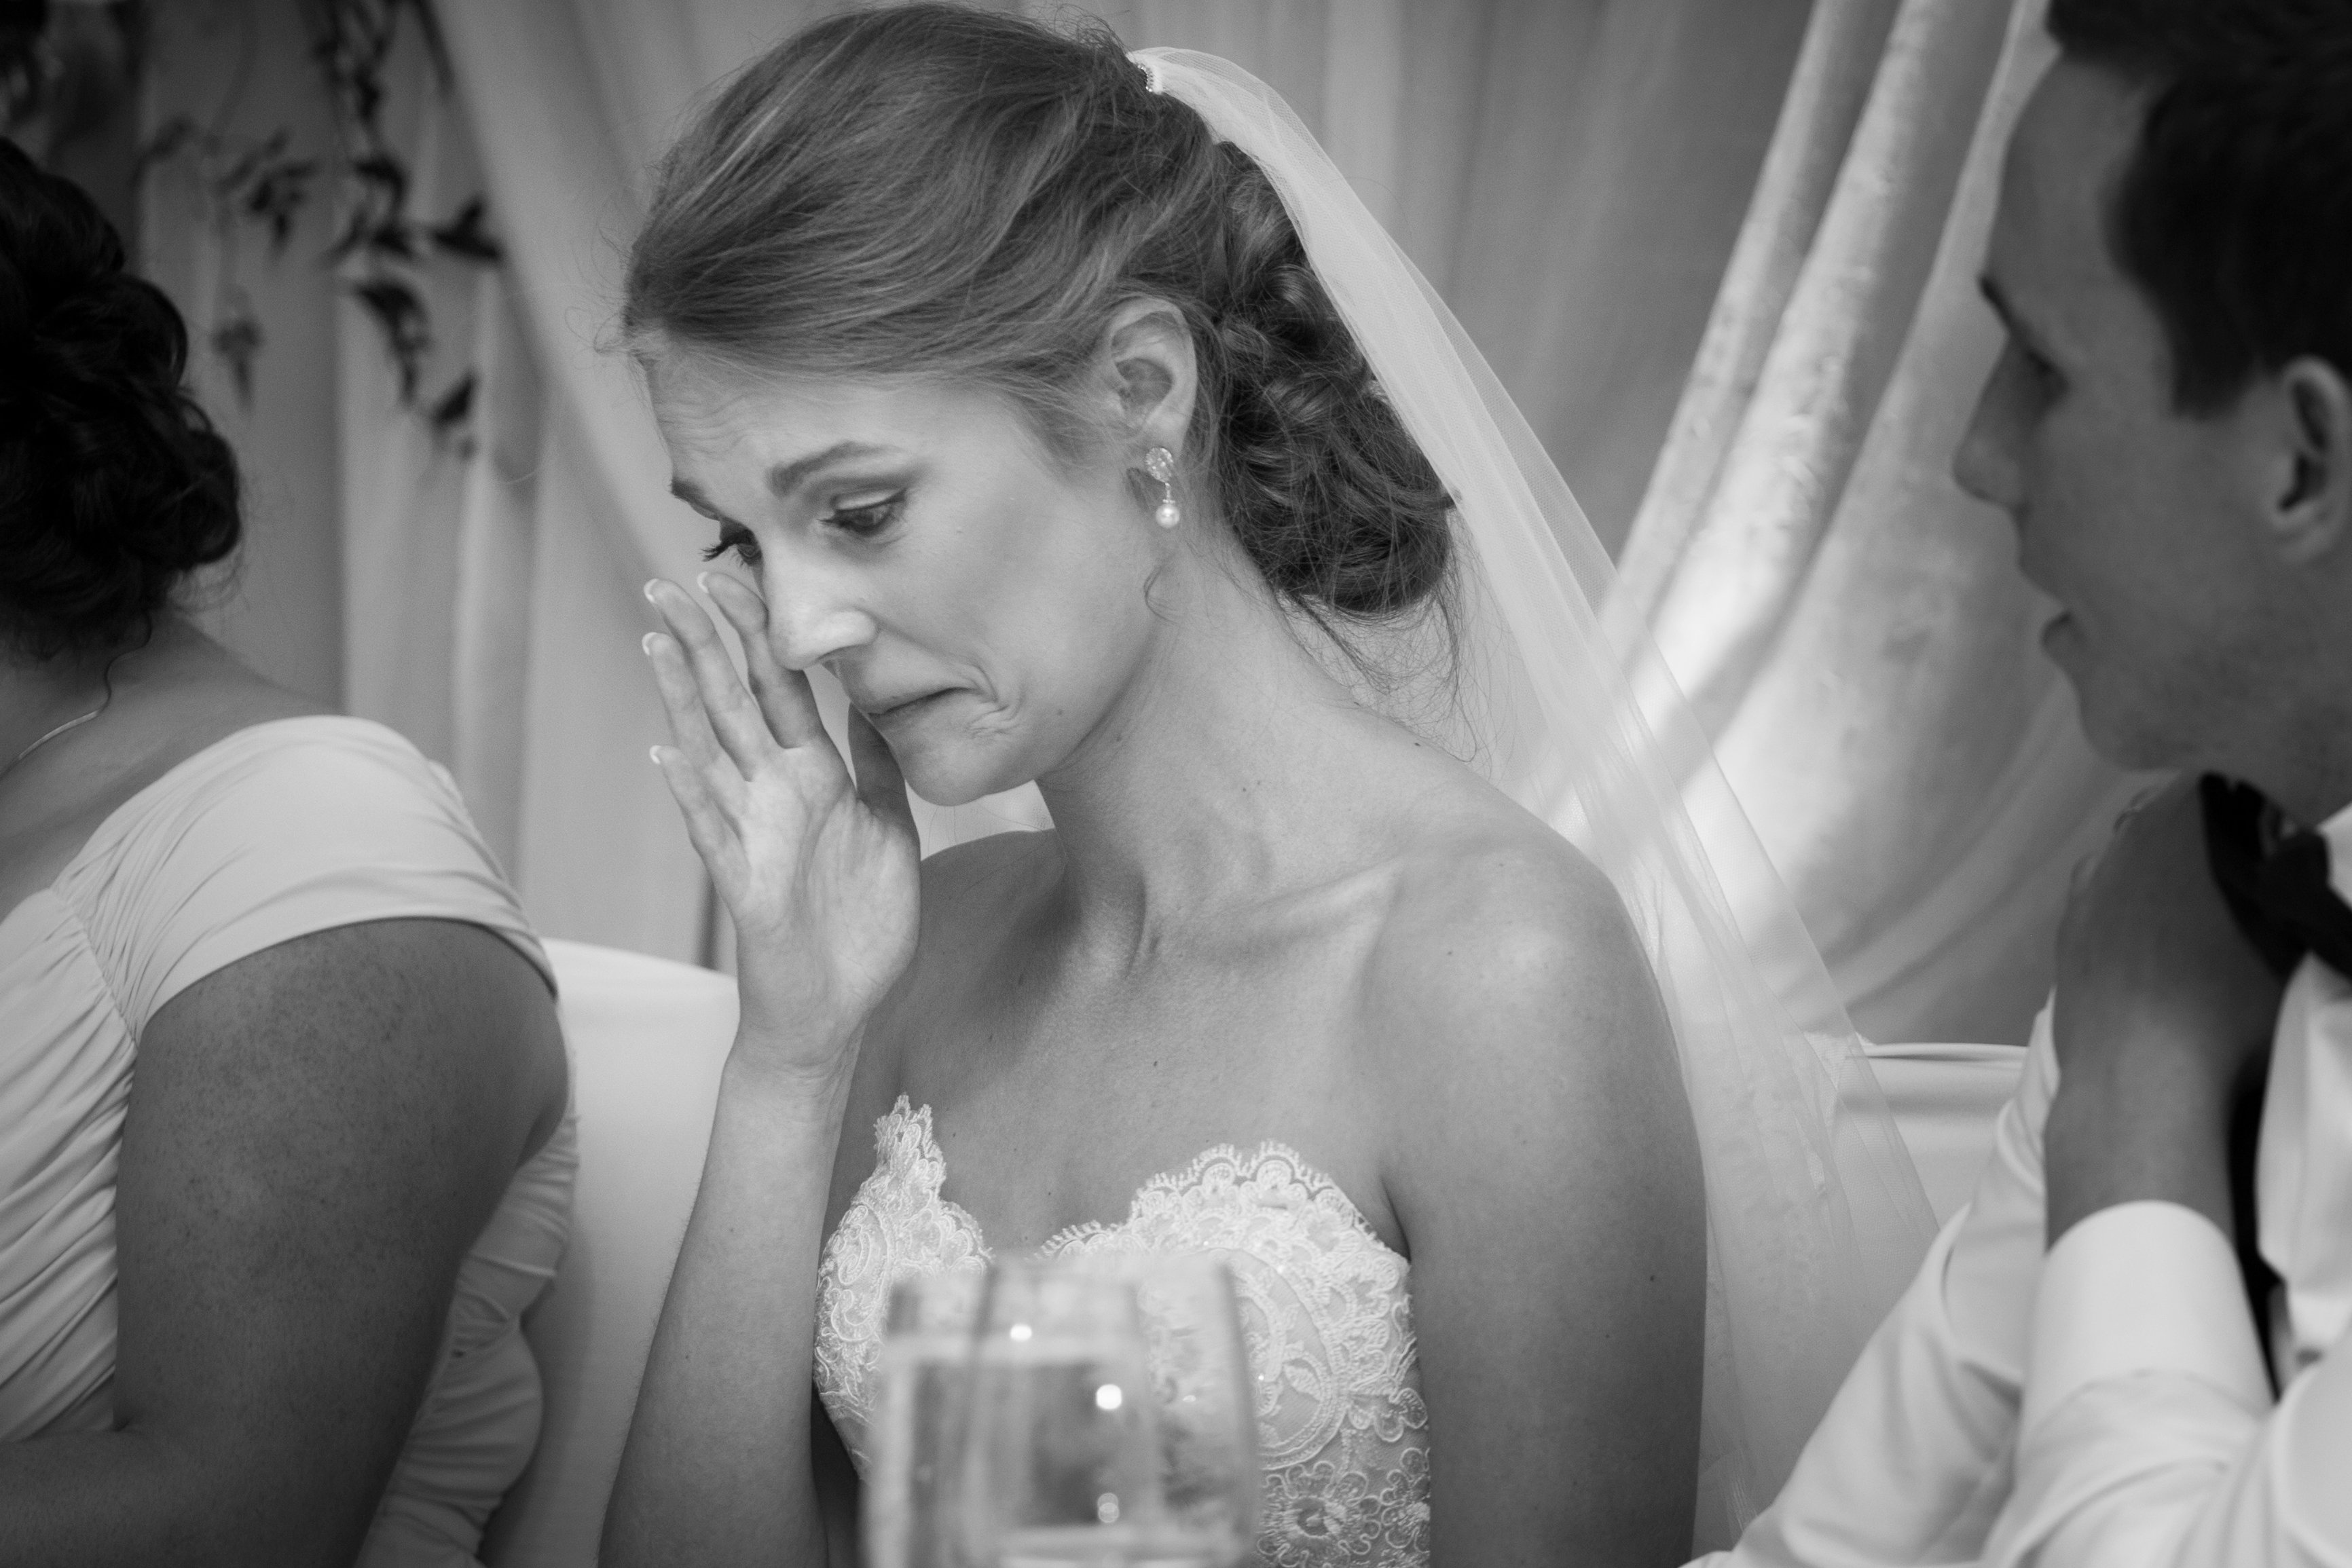 Bride wiping a tear from her eye while listening to speeches at her wedding reception